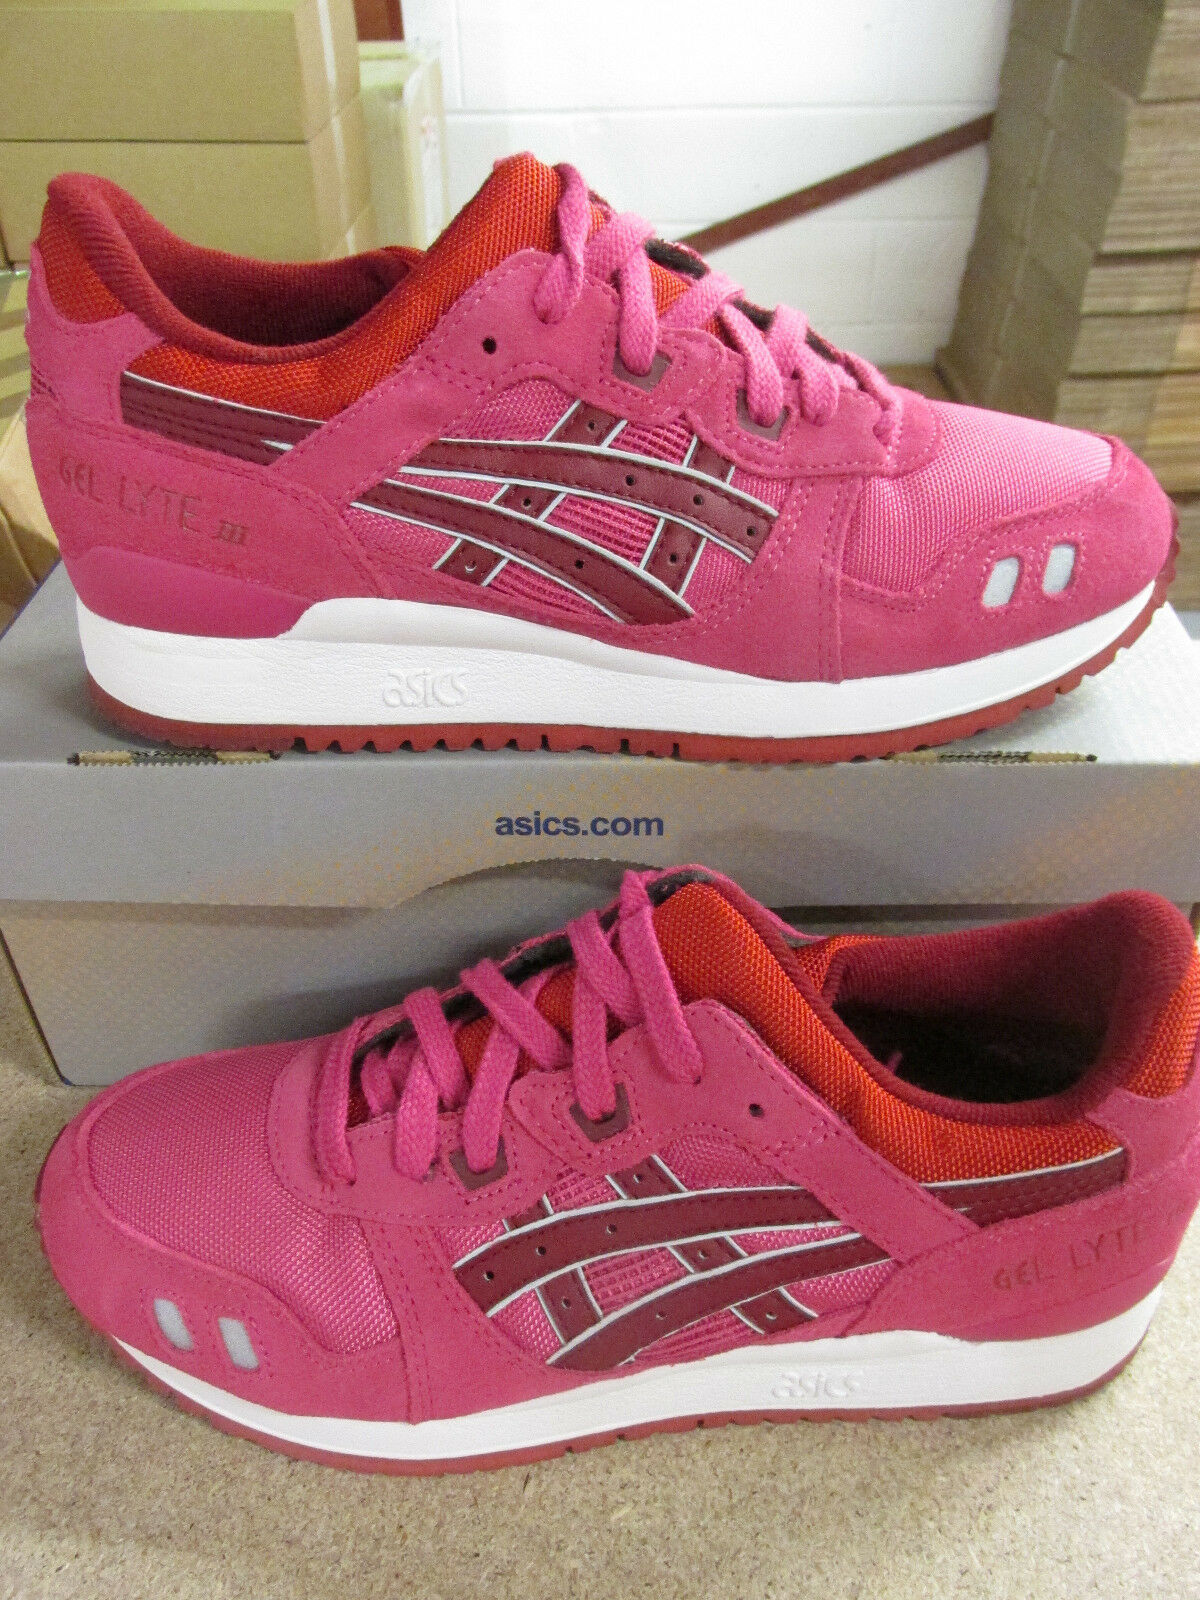 asics gel-lyte III 3 Mujer Zapatos trainers H483N 2526 sneaker Zapatos Mujer 616ce1